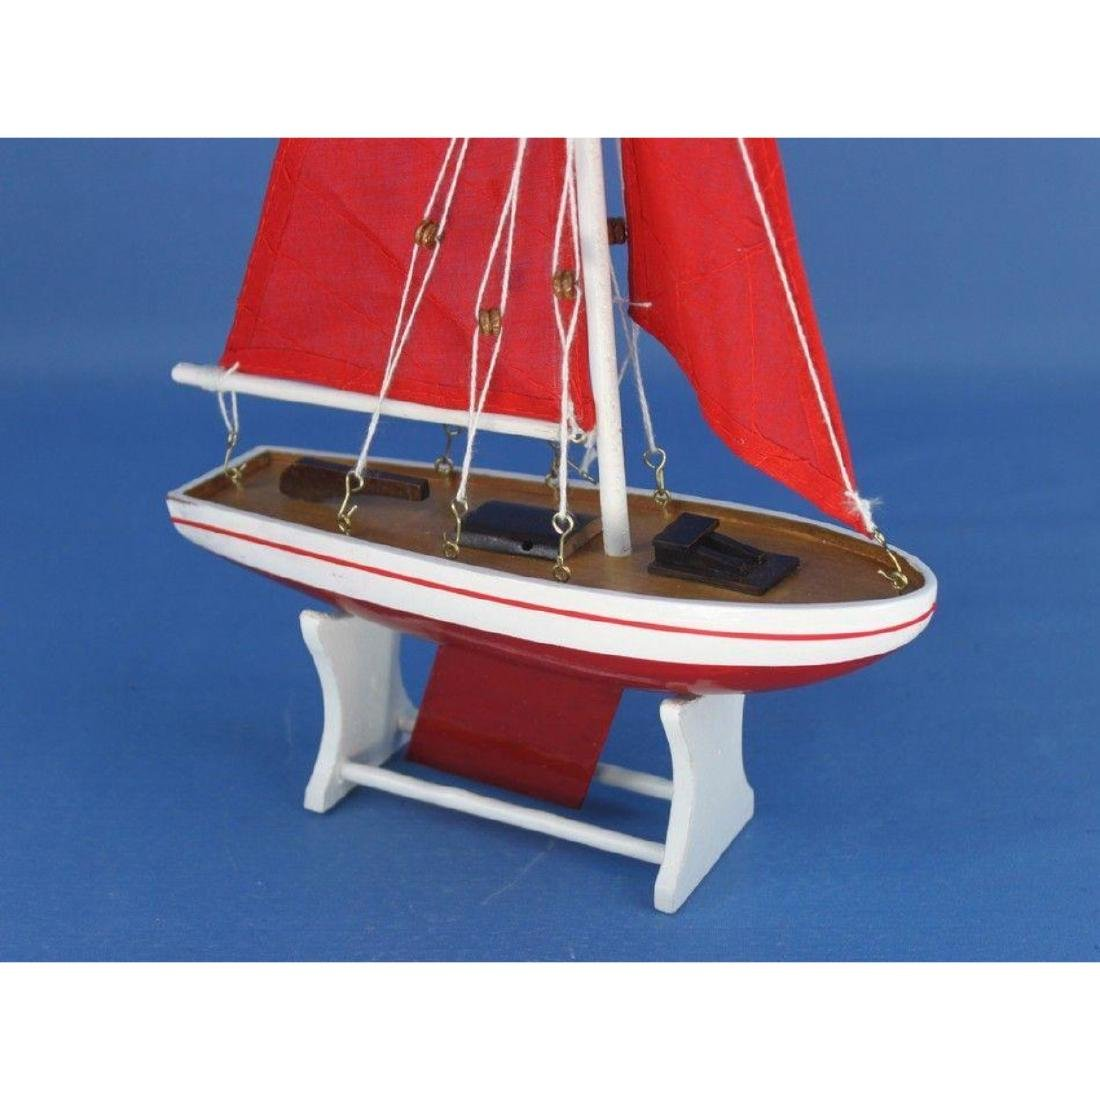 "Wooden It Floats 12"" - Red with Red Sails Floating - 10"